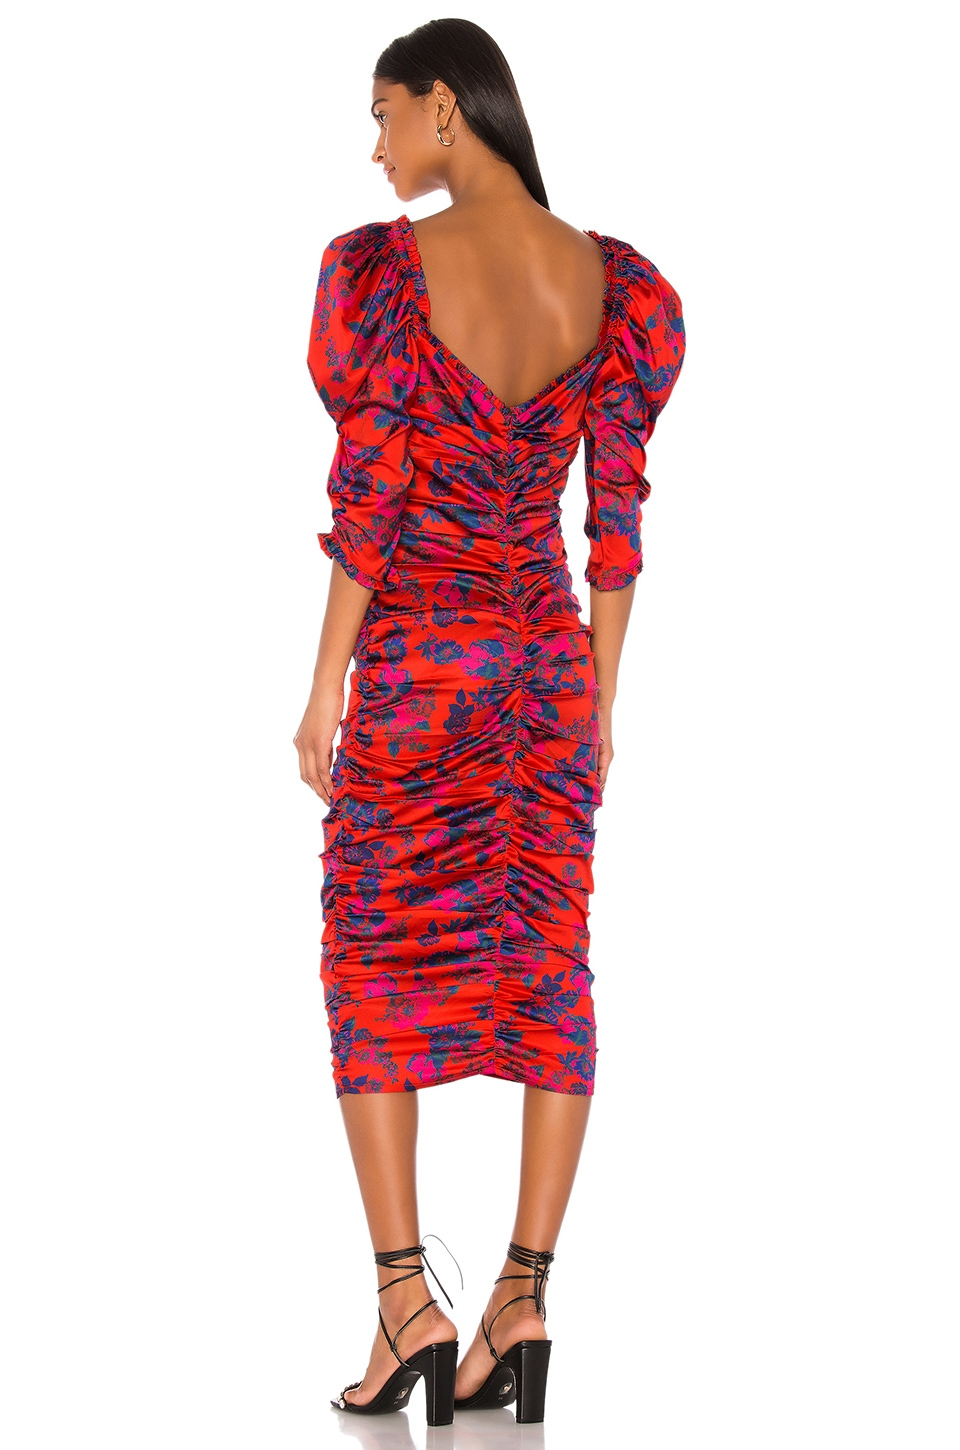 Monet Midi Dress, view 3, click to view large image.